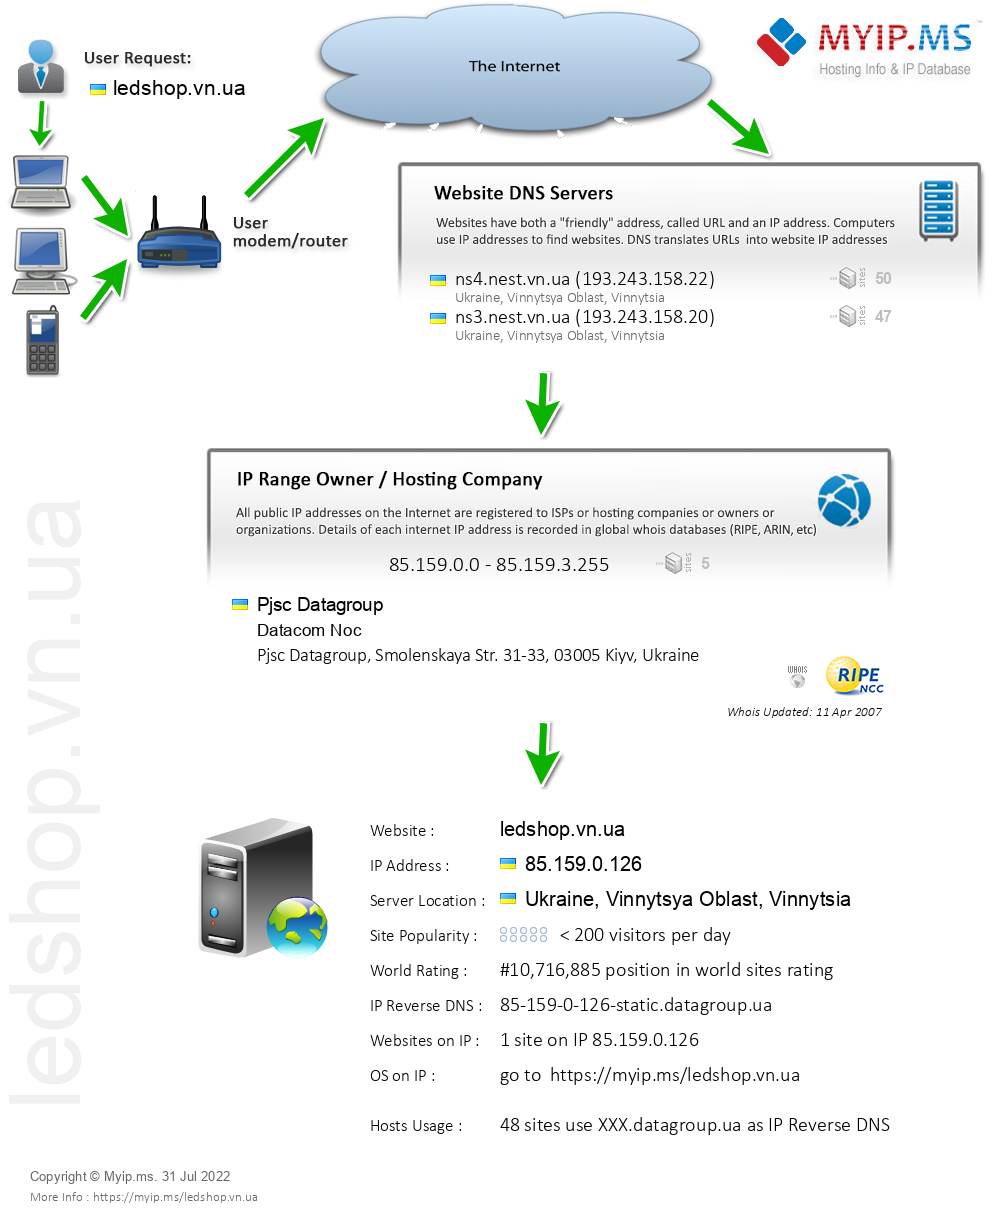 Ledshop.vn.ua - Website Hosting Visual IP Diagram